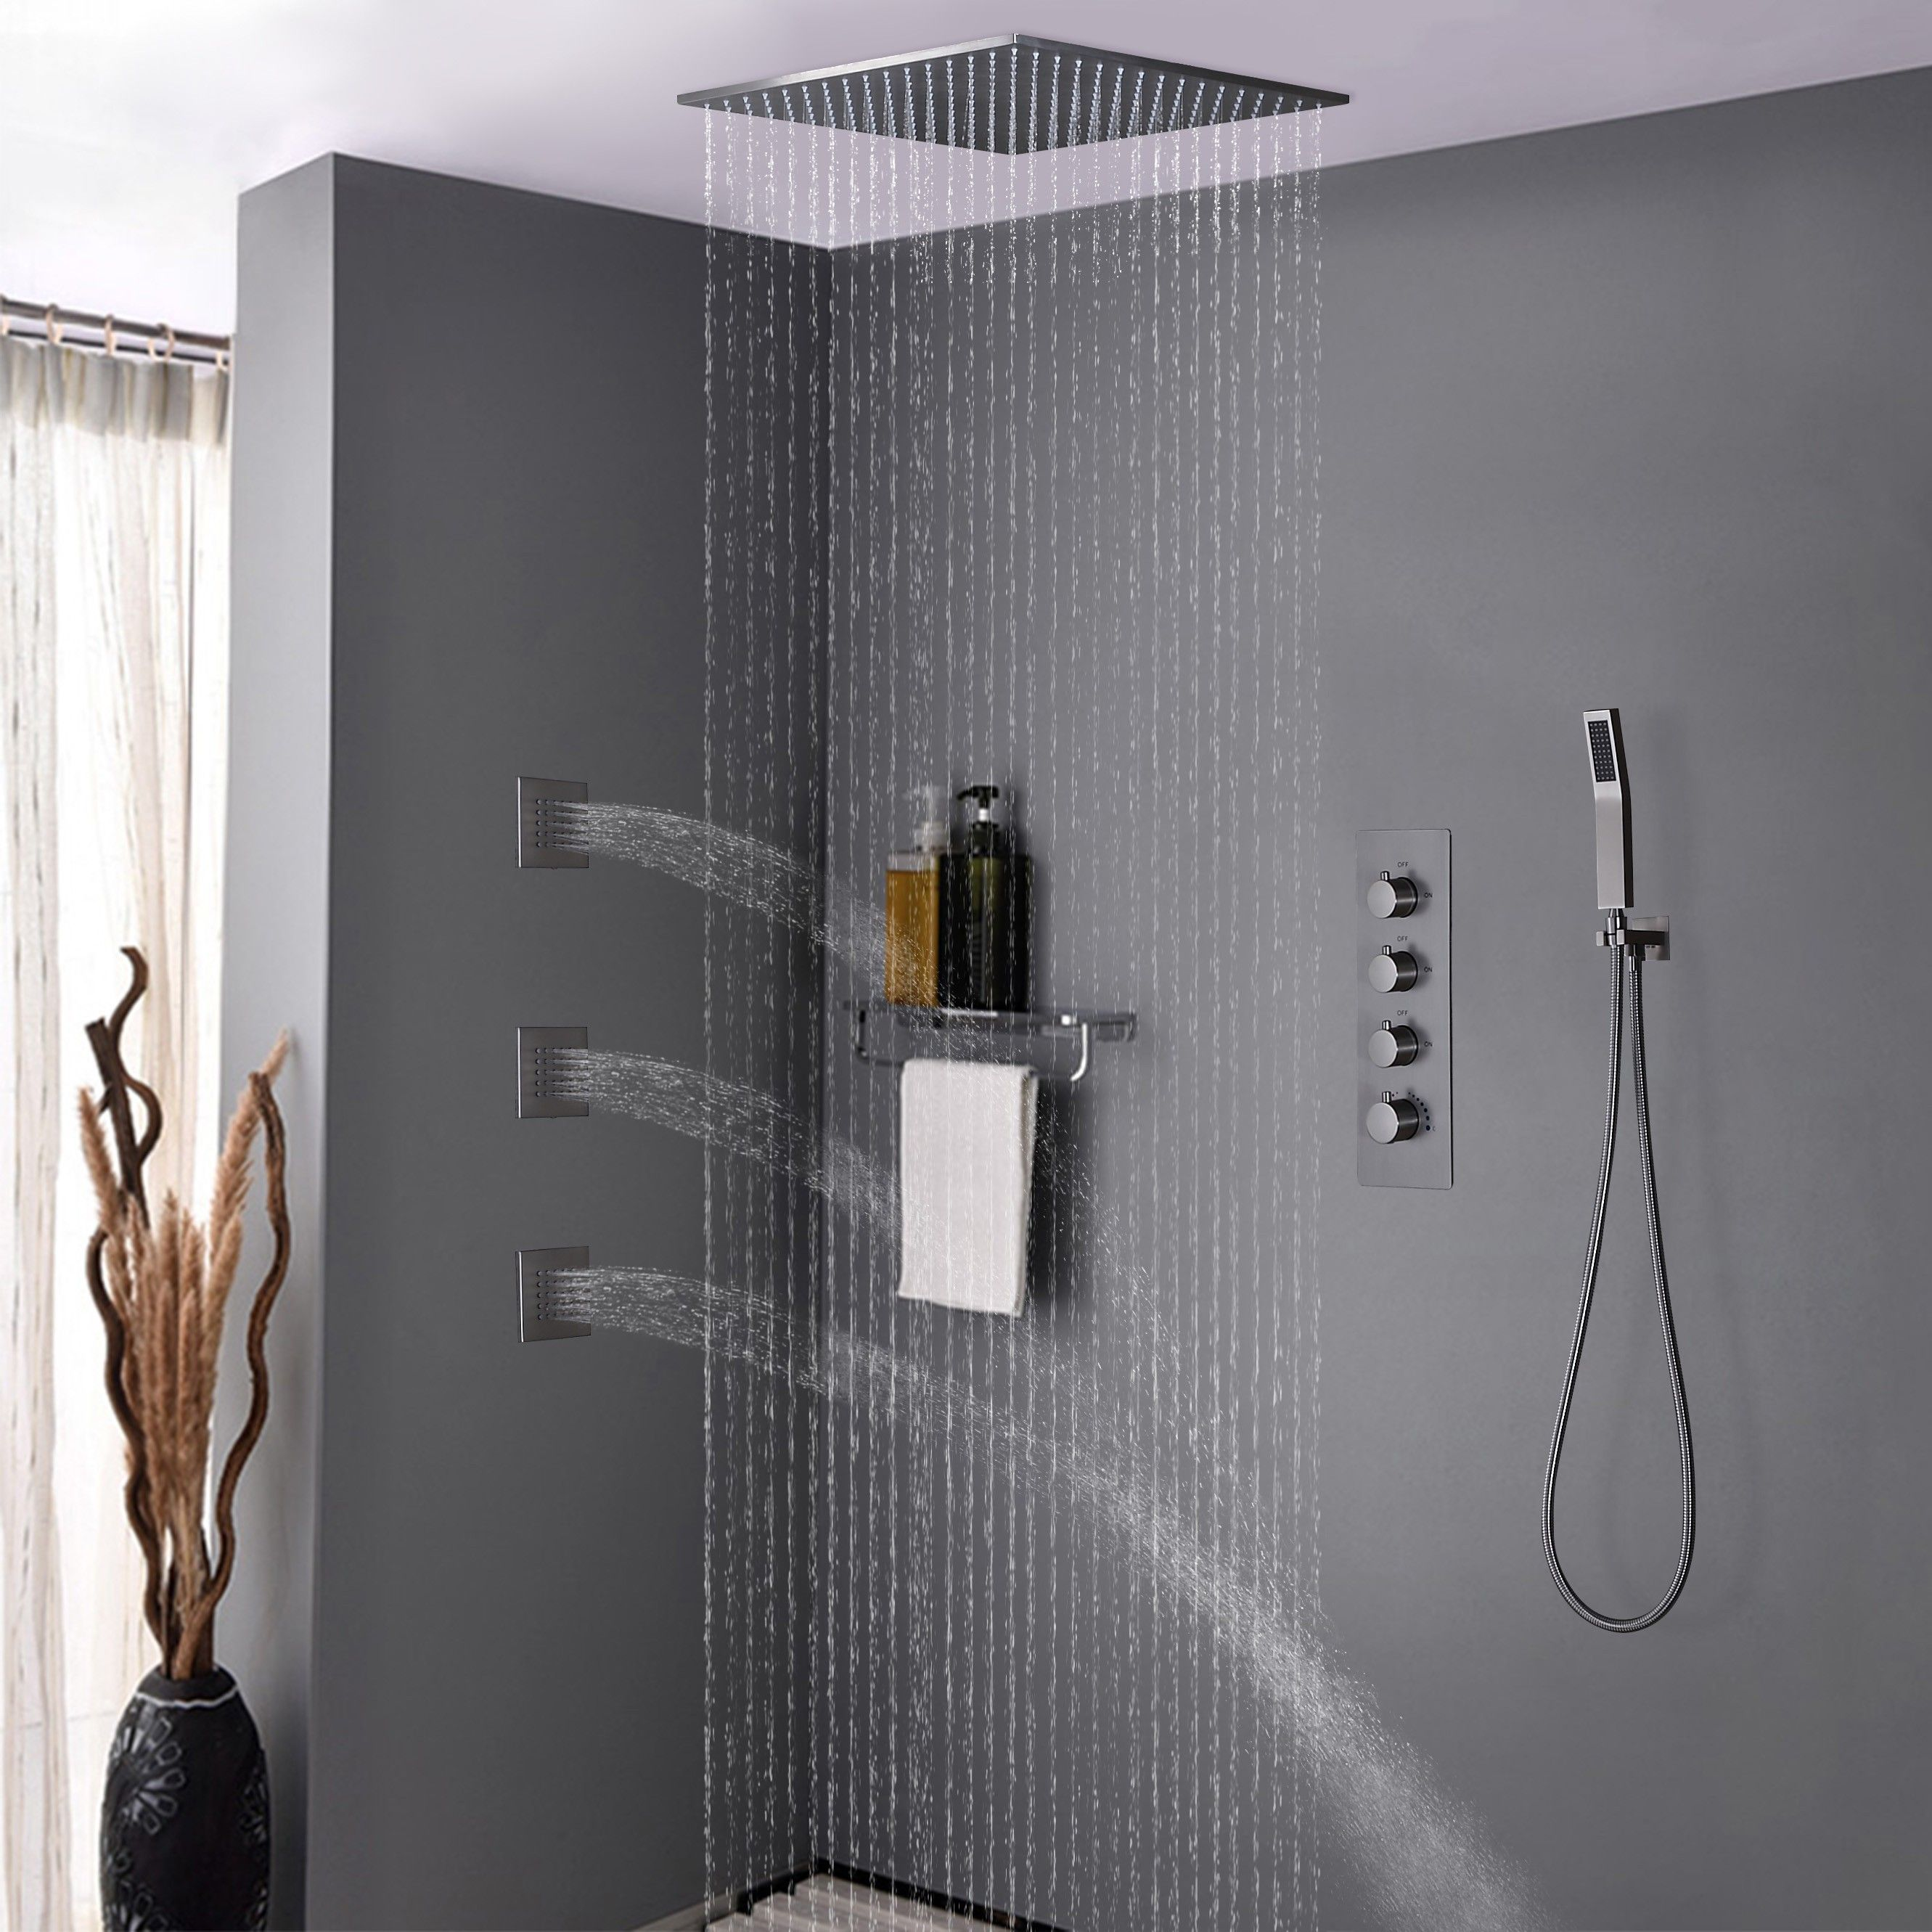 Modern Rain Thermostatic Brushed Nickel Shower Faucet Flush Mount Shower System With Hand Shower Body Jets Solid Brass Shower Faucet Square Shower Head Shower System